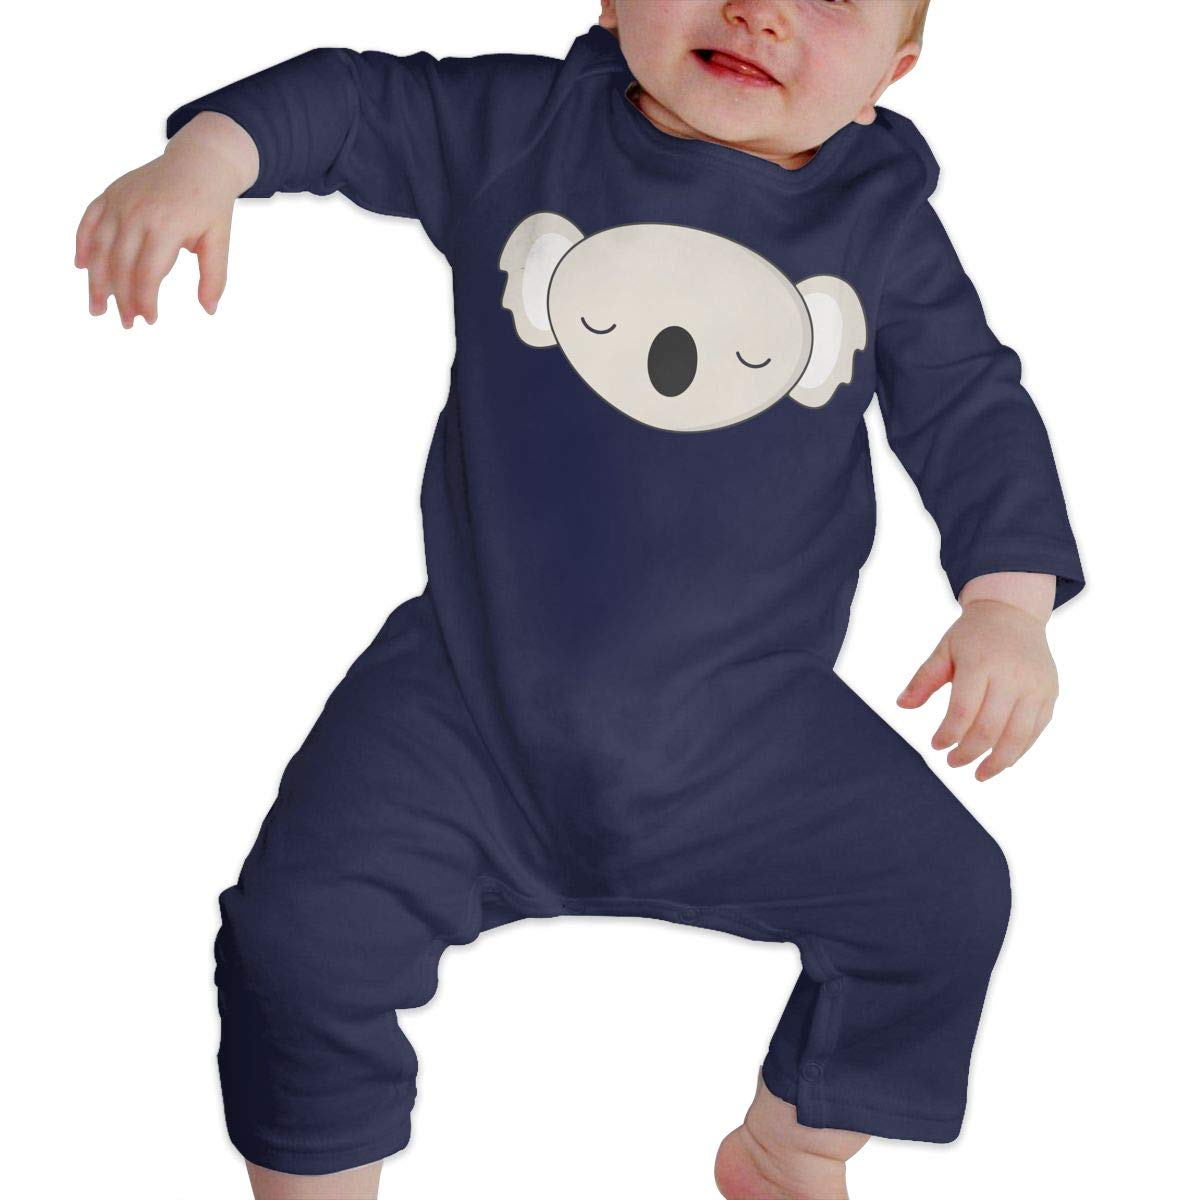 Cute Koala Infant Baby Boy Girl Soft /& Breathable Bodysuit Outfits Clothes